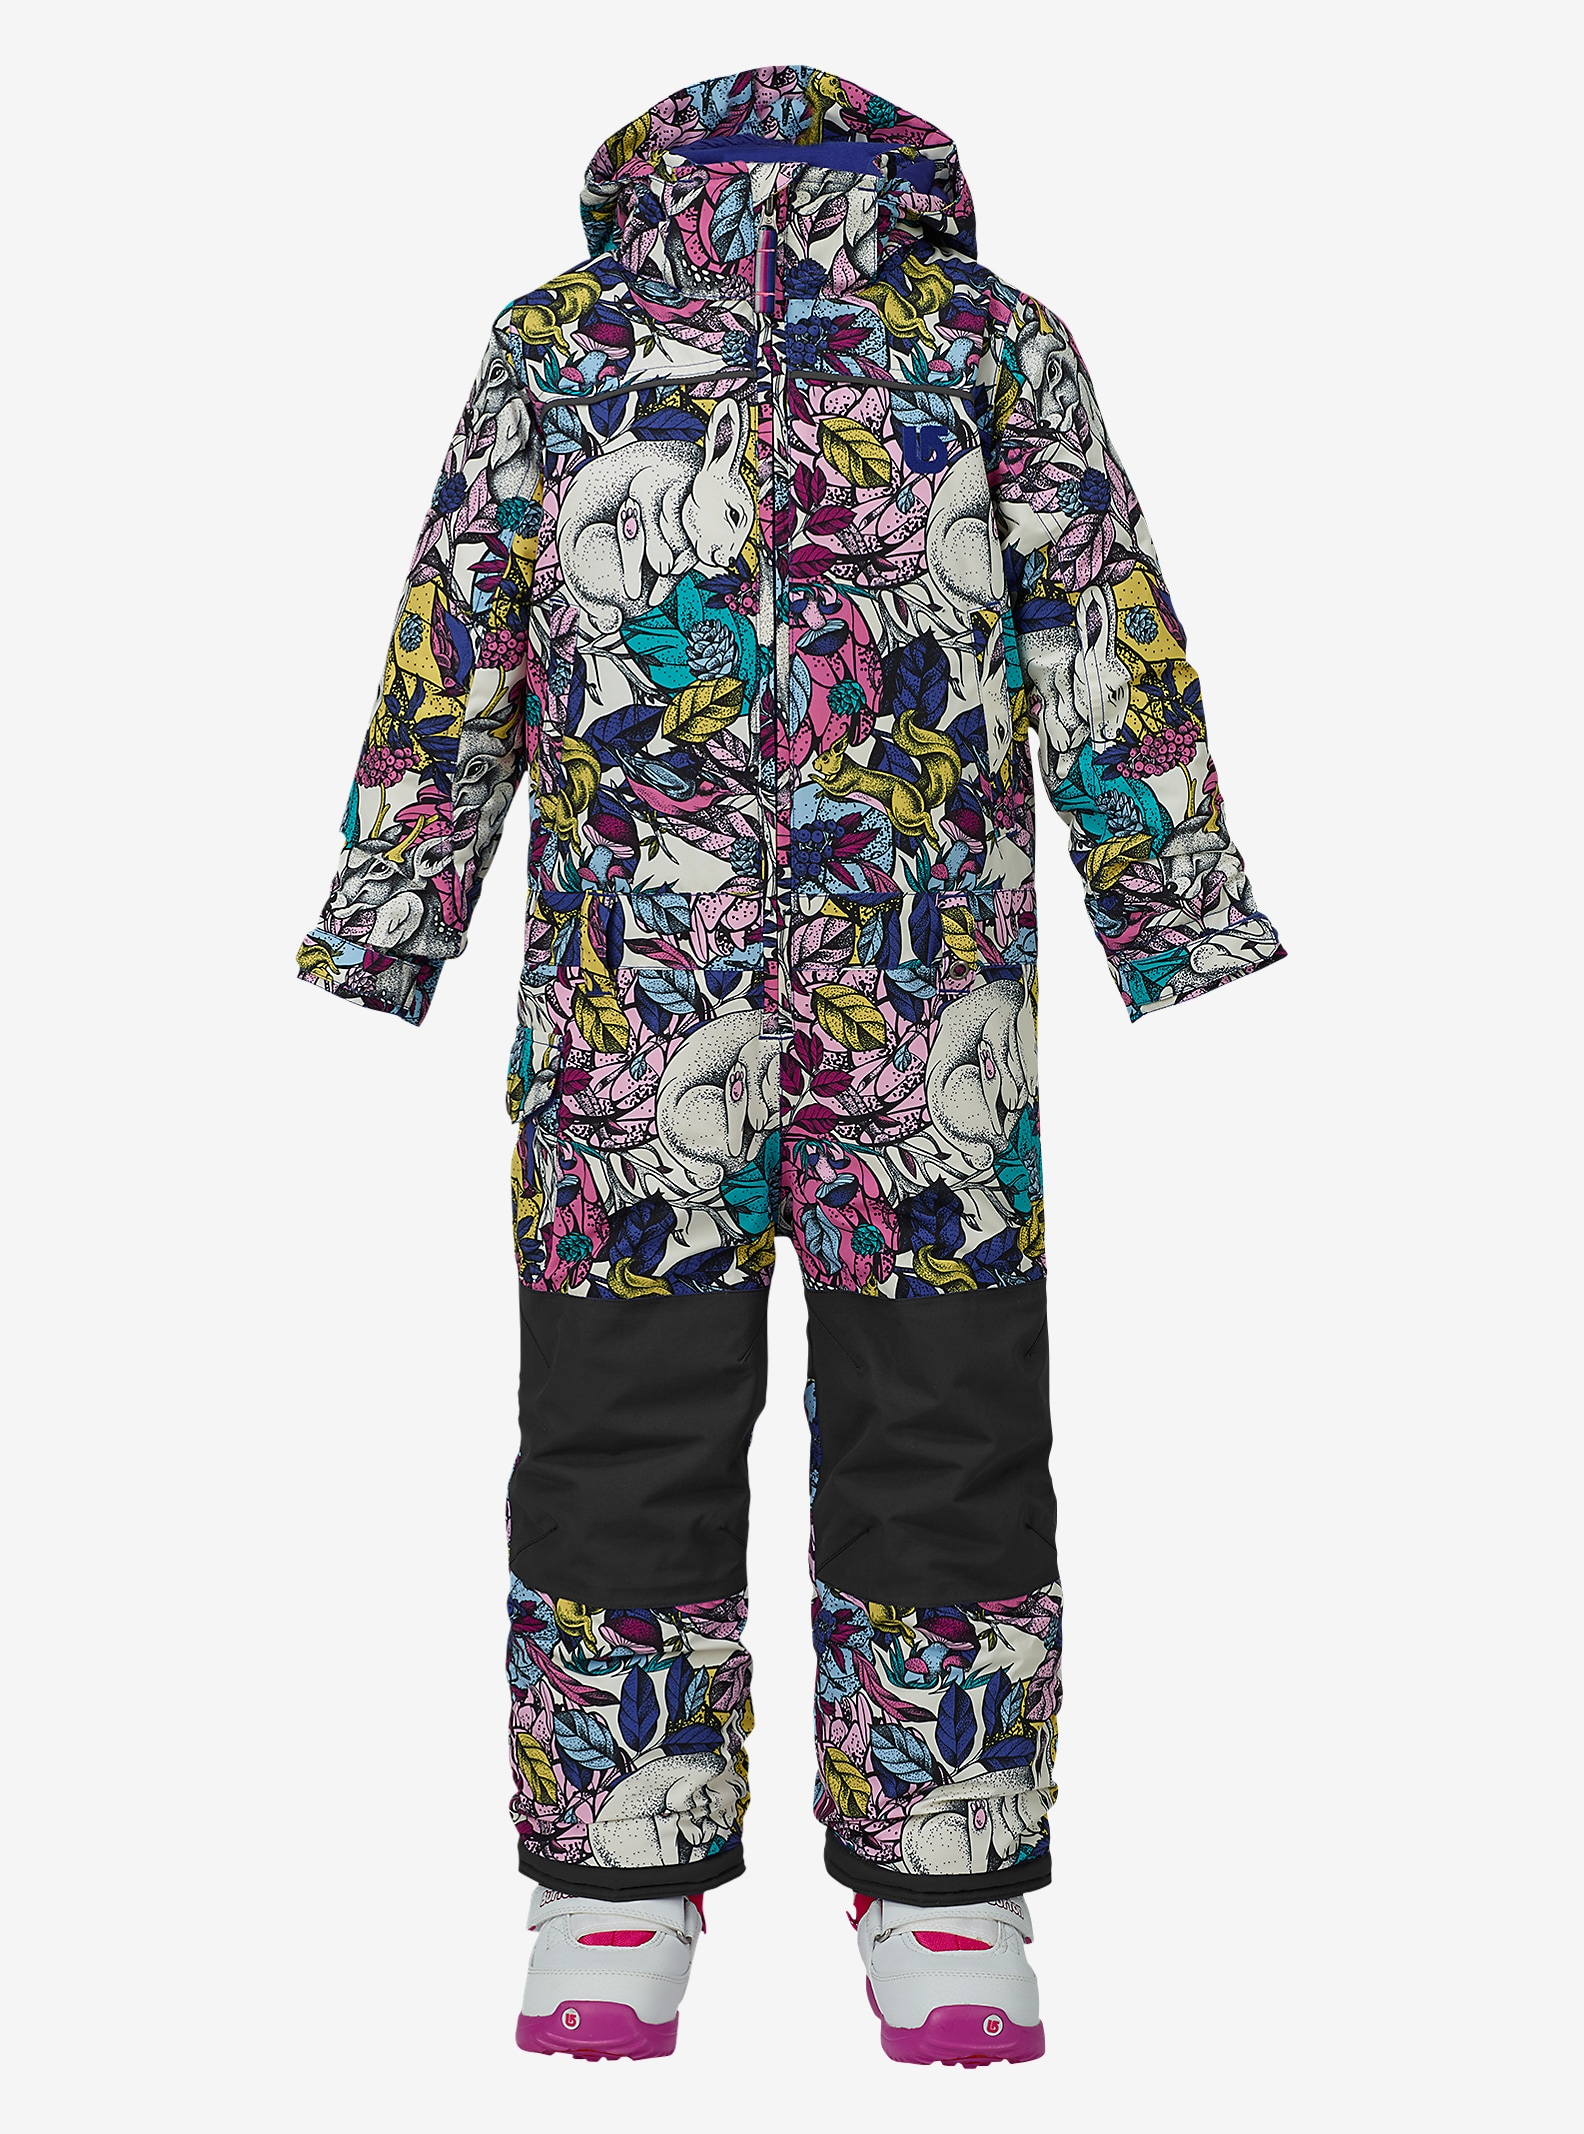 Burton Girls' Minishred Illusion One Piece shown in Animalia